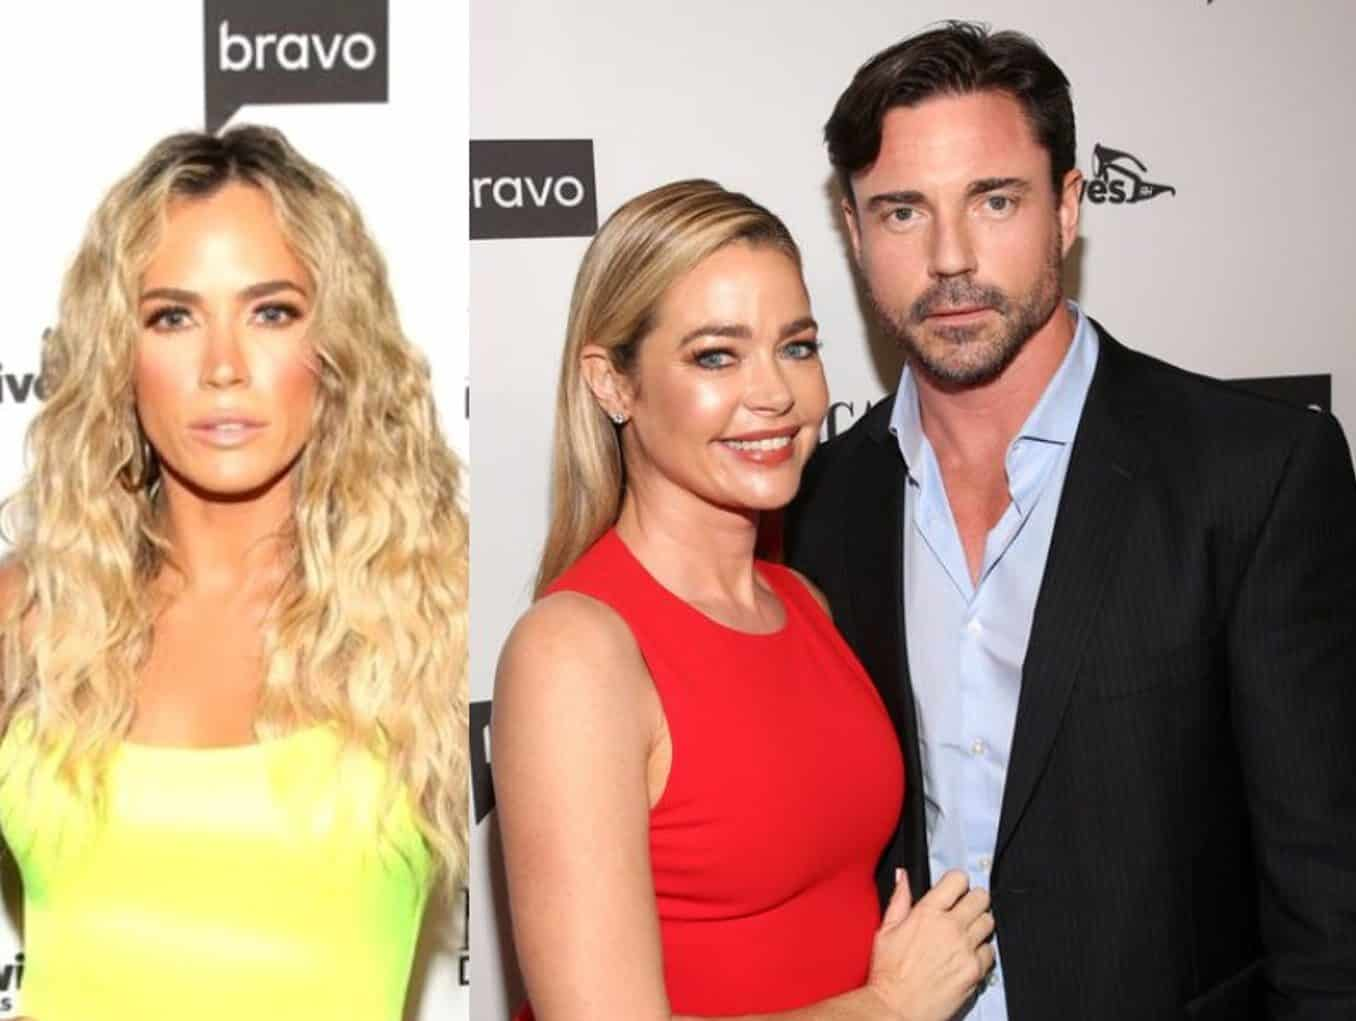 """RHOBH's Teddi Mellencamp Tells Aaron Phypers: """"Find Your Diamond Elsewhere"""" Amid Feud, Plus Denise Insists She Was """"Obviously Joking"""" About 'Steak' and 'Strip Bar' After Rinna Throws Shade"""